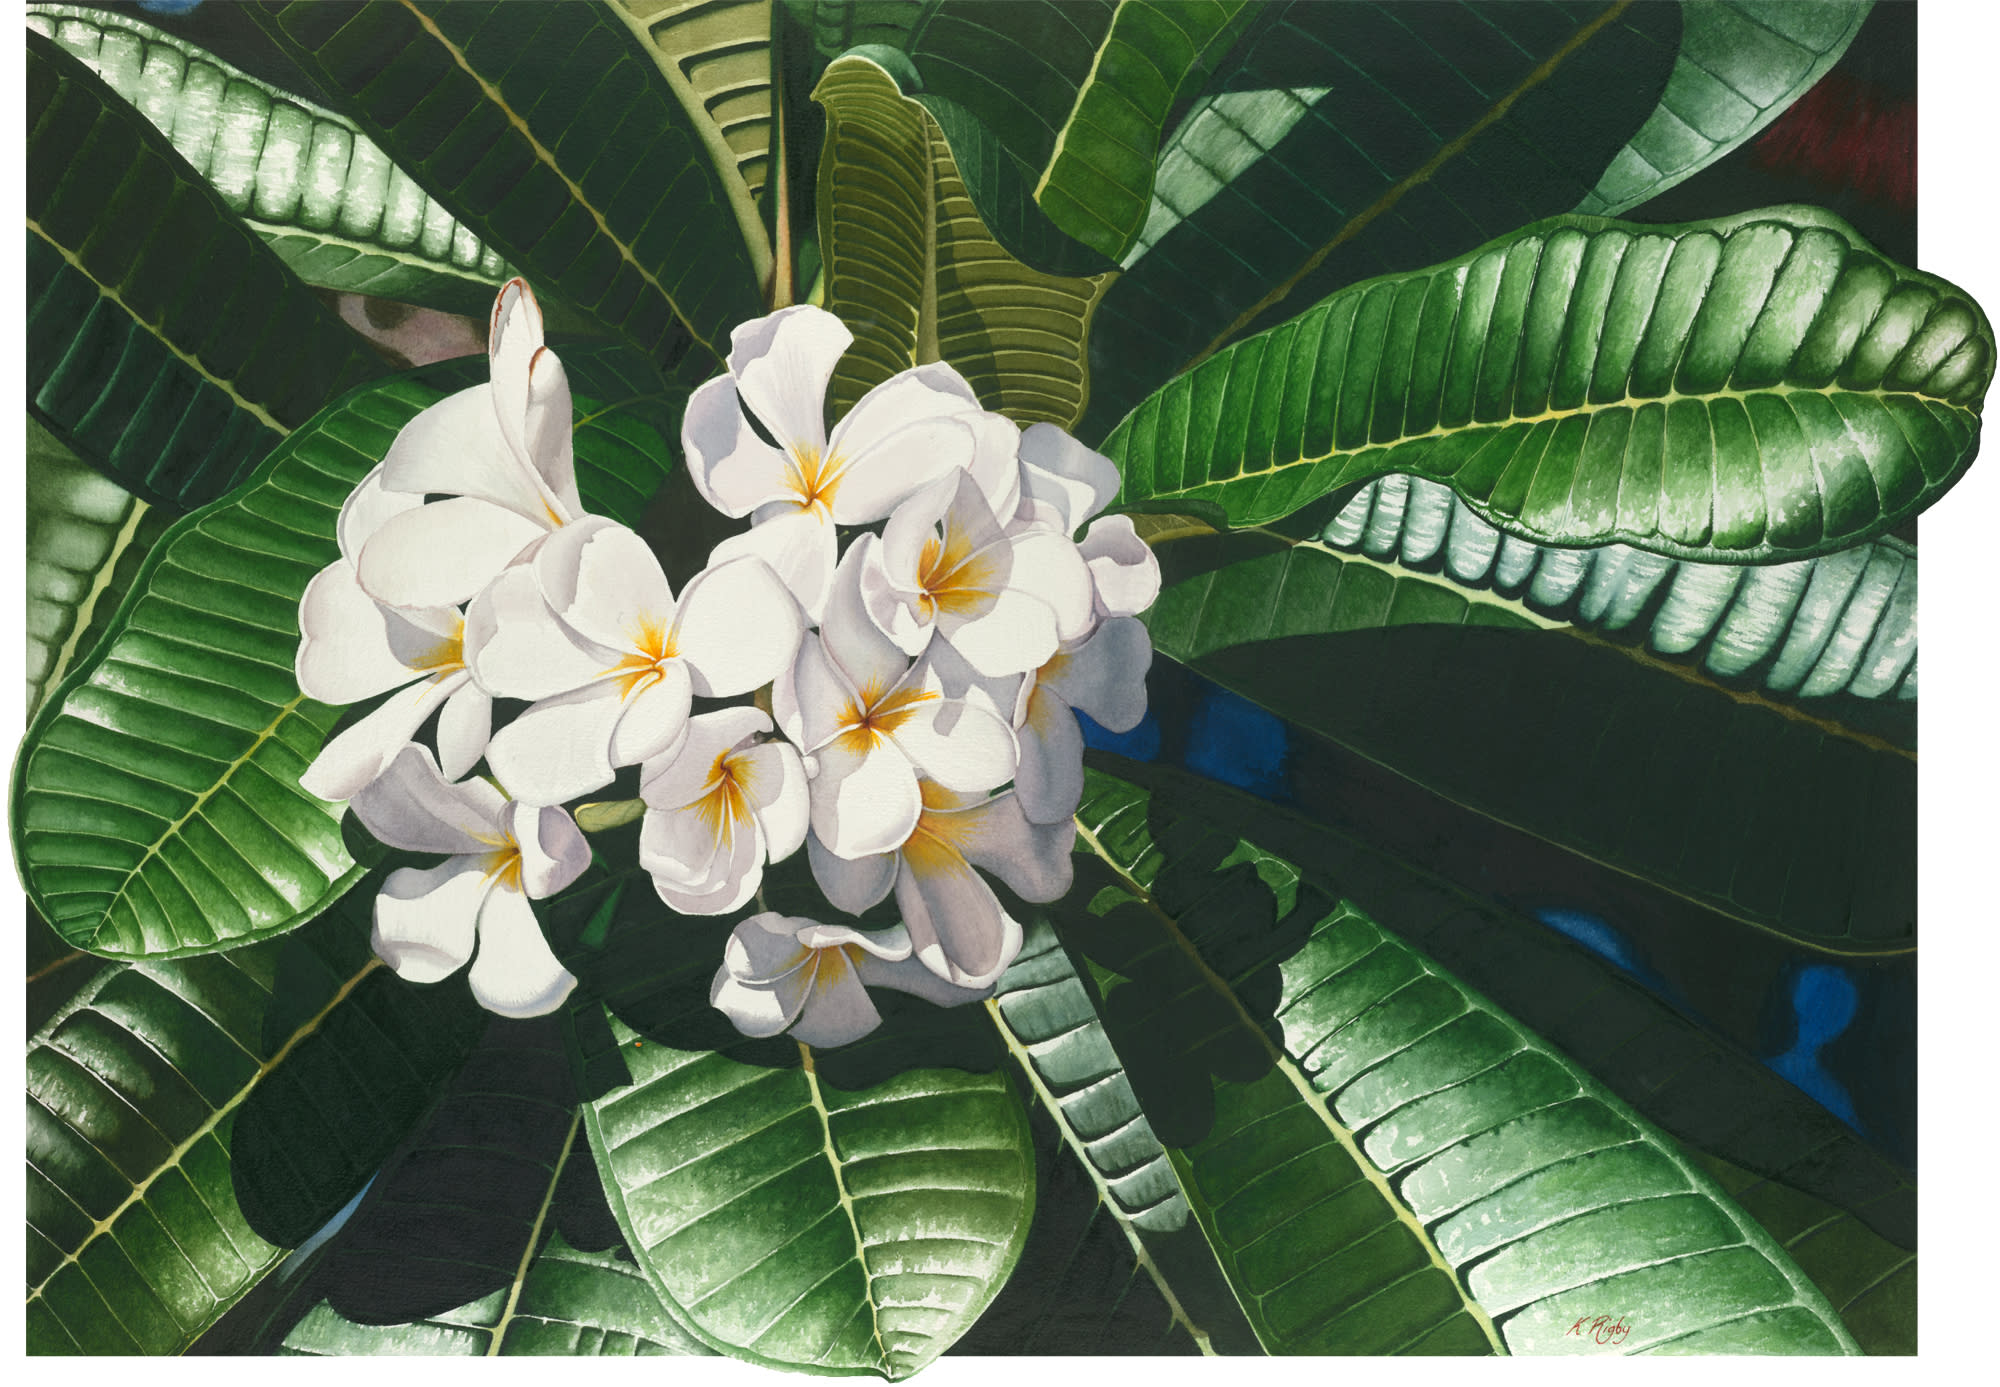 Krig 007 frangipani 84x60cm orig without extras lcerpd